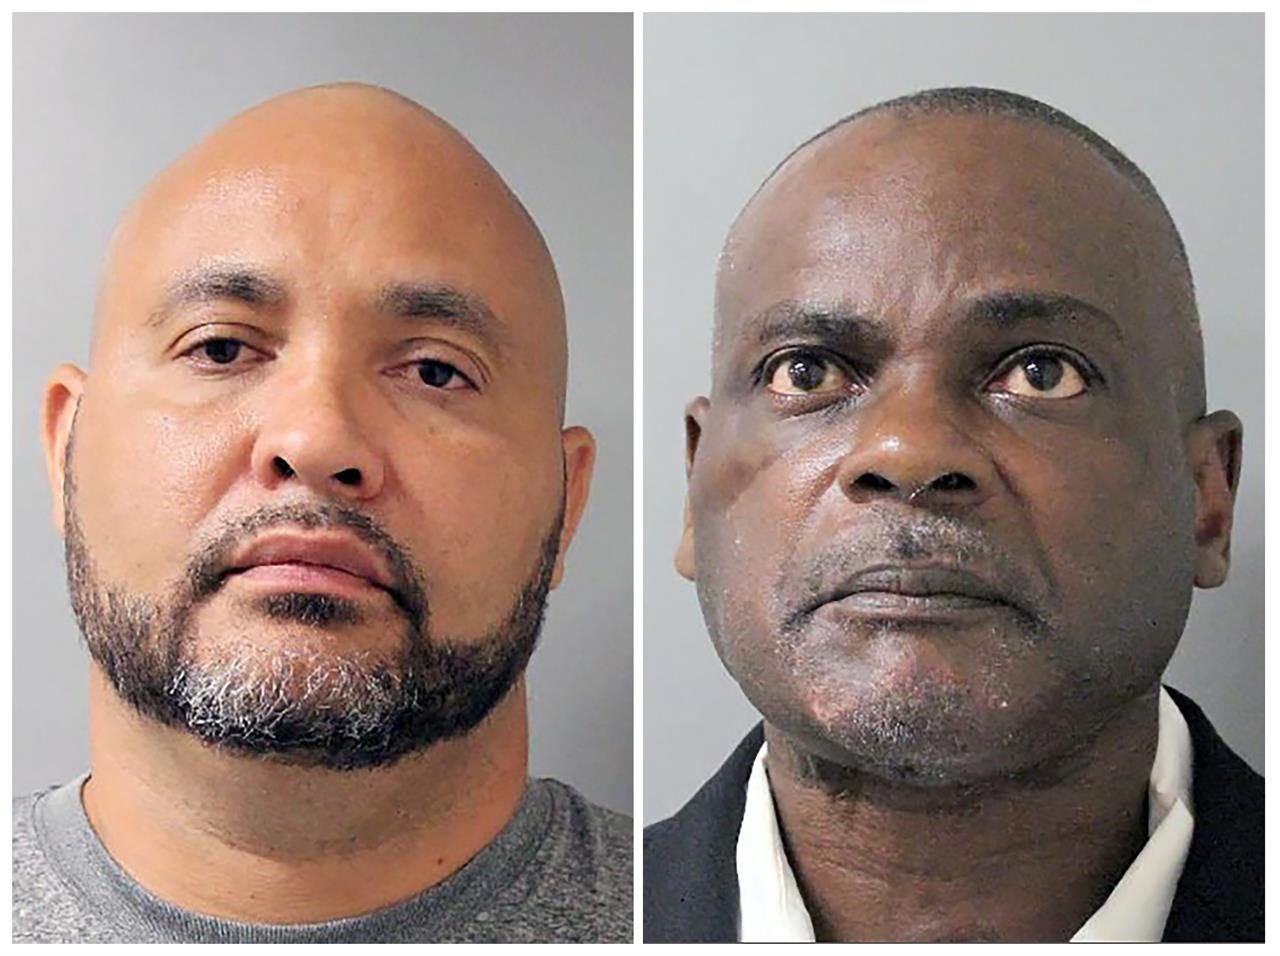 FILE - This combination of undated file photos provided by the Houston Police Department shows Steven Bryant, left, and Gerald Goines, in Houston. Prosecutors say a grand jury has indicted six former Houston police officers, including Bryant and Goines, whose work with a narcotics unit has been under scrutiny since a 2019 drug raid in which a couple was killed. (Houston Police Department via AP, File)